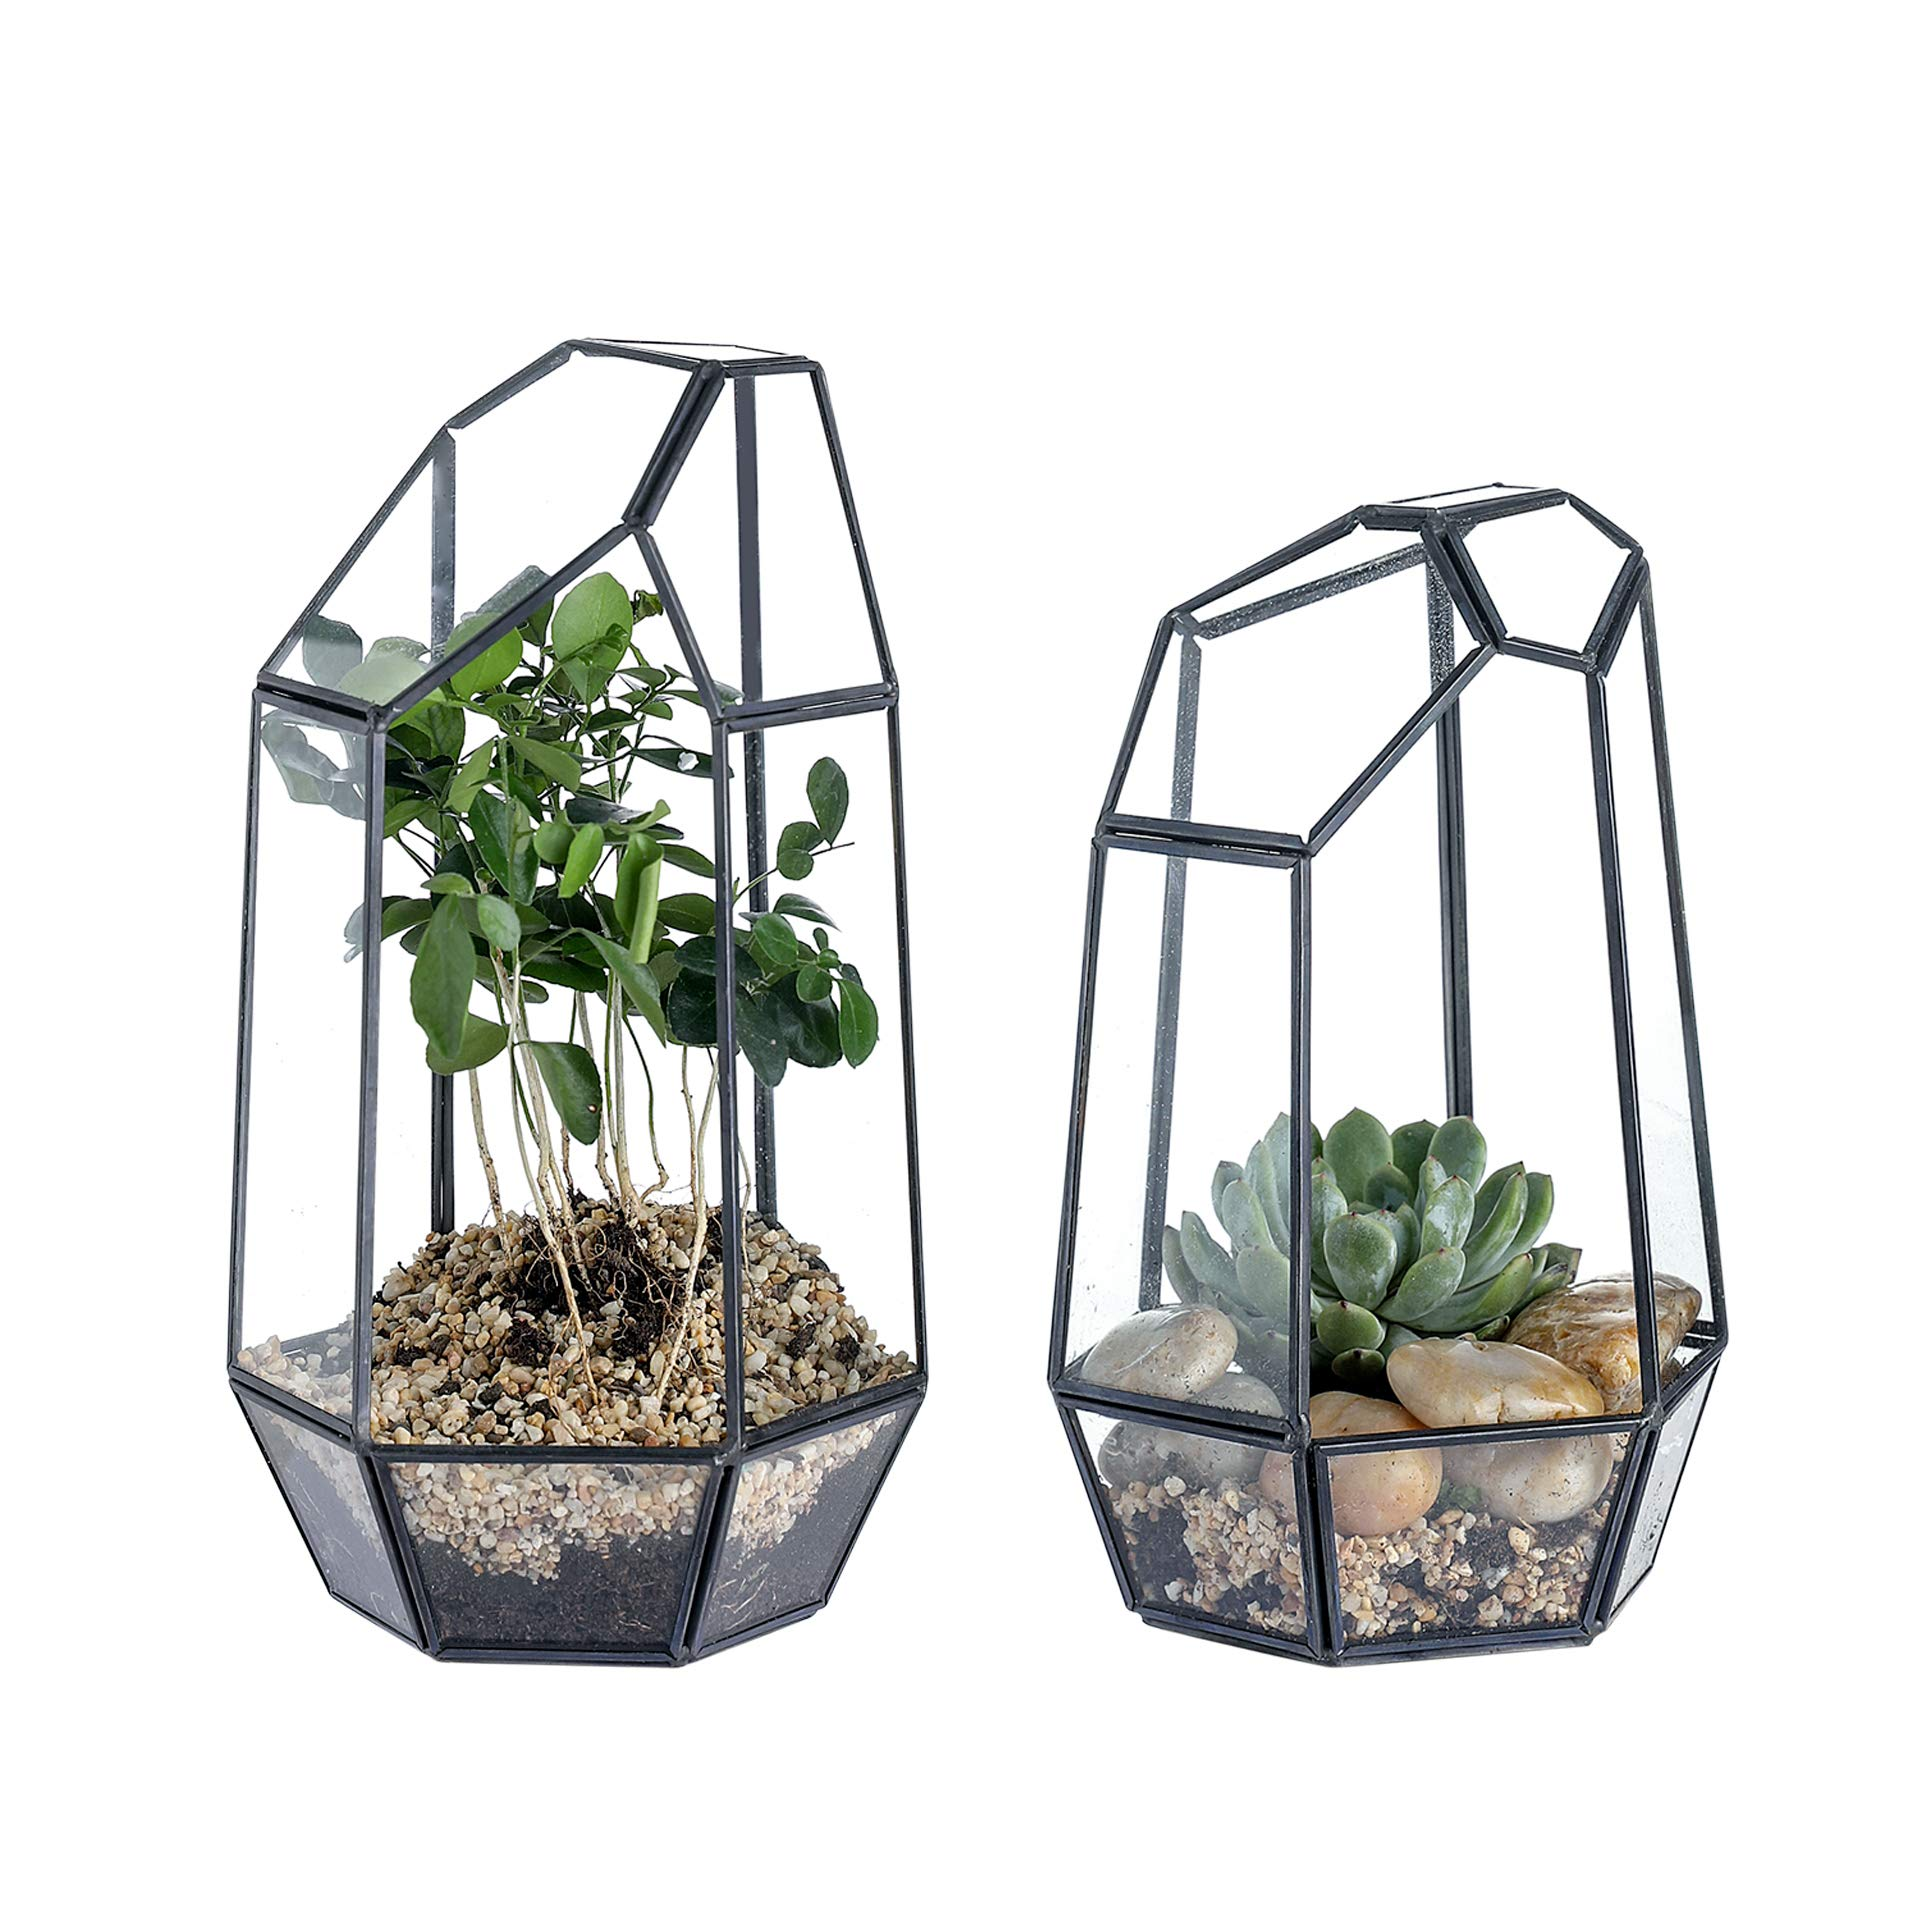 Whole Housewares Glass Geometric Terrarium Container 5.3X9.6 inch and 4.8X7.7 inch Tabletop for Succulent & Air Plant (Black, 2pcs) by Whole Housewares